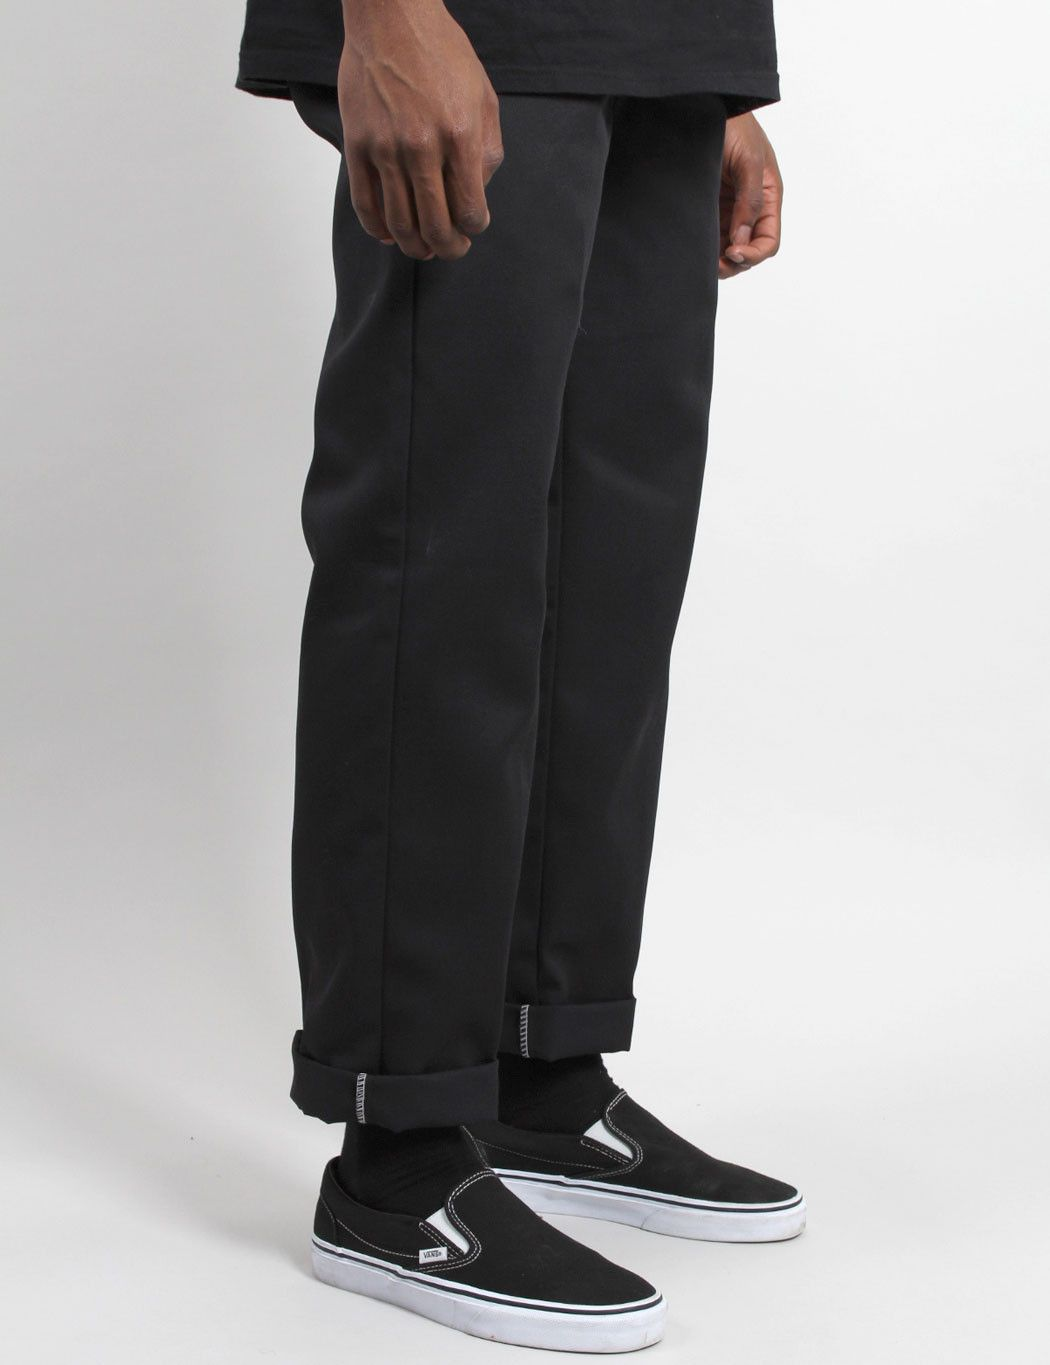 7364e35e435f Dickies 873 Work Pant (Slim Straight) - Black in 2019